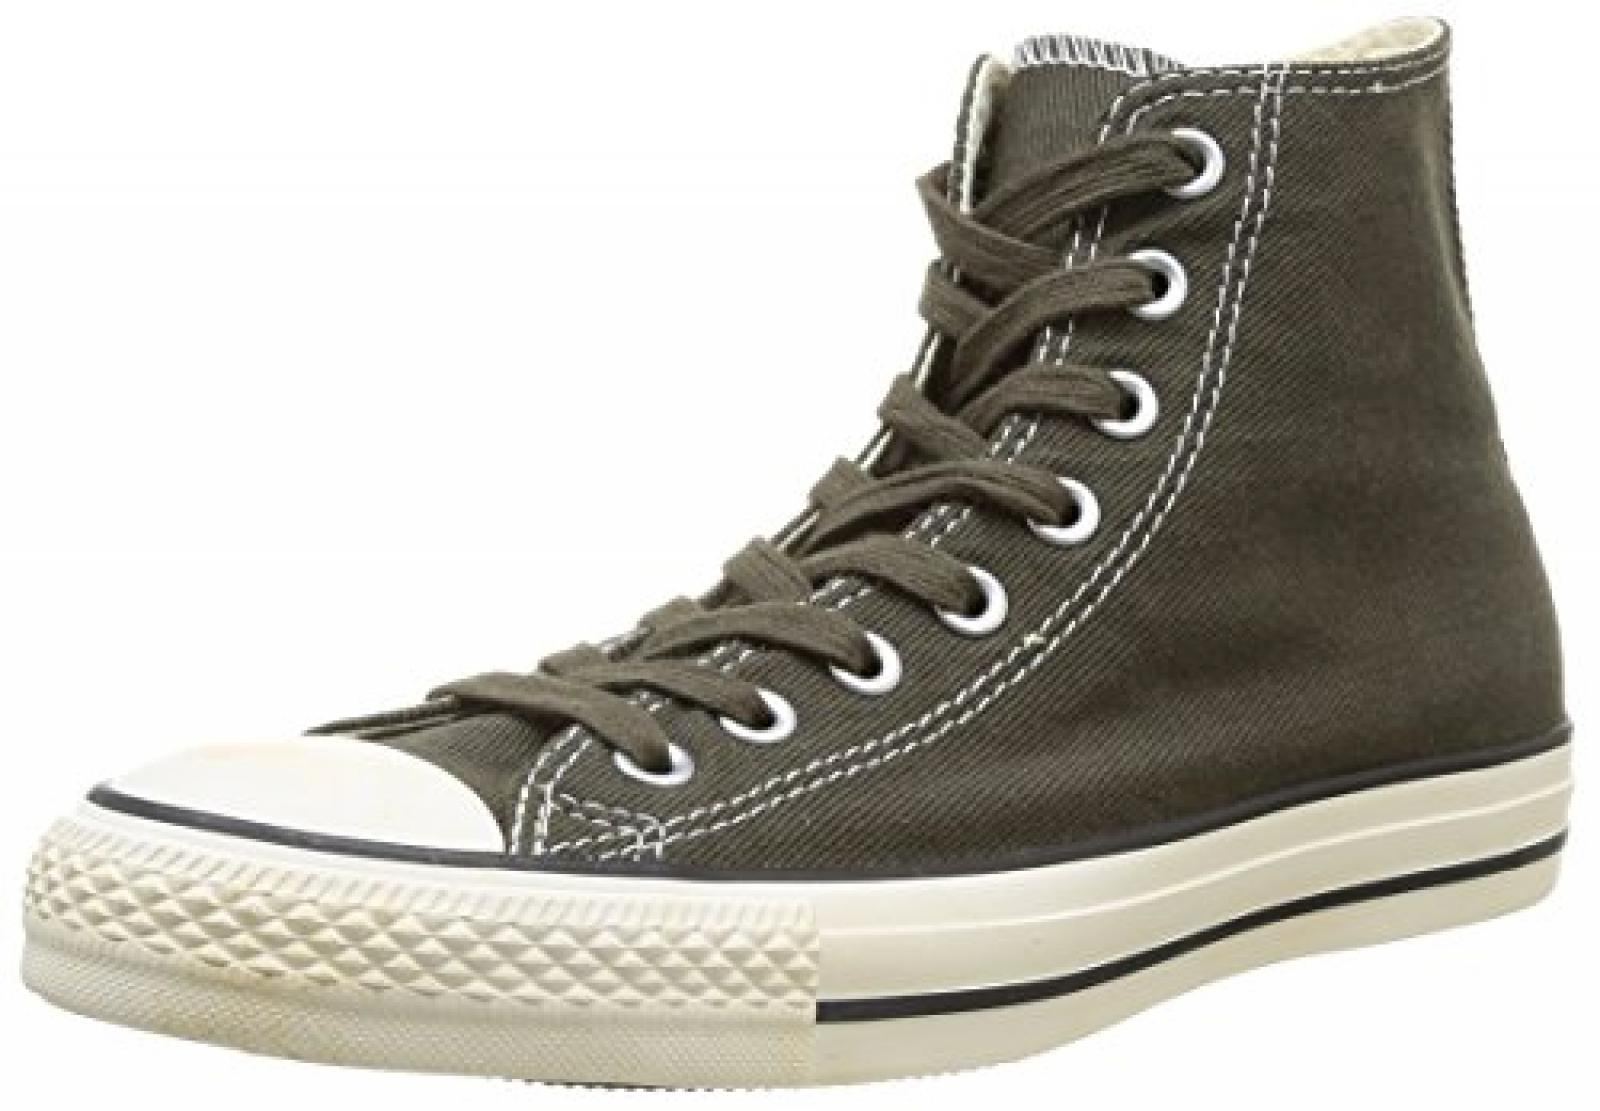 Converse Chuck Taylor All Star Homme Vintage Washed Twill Hi 381770 Herren Sneaker